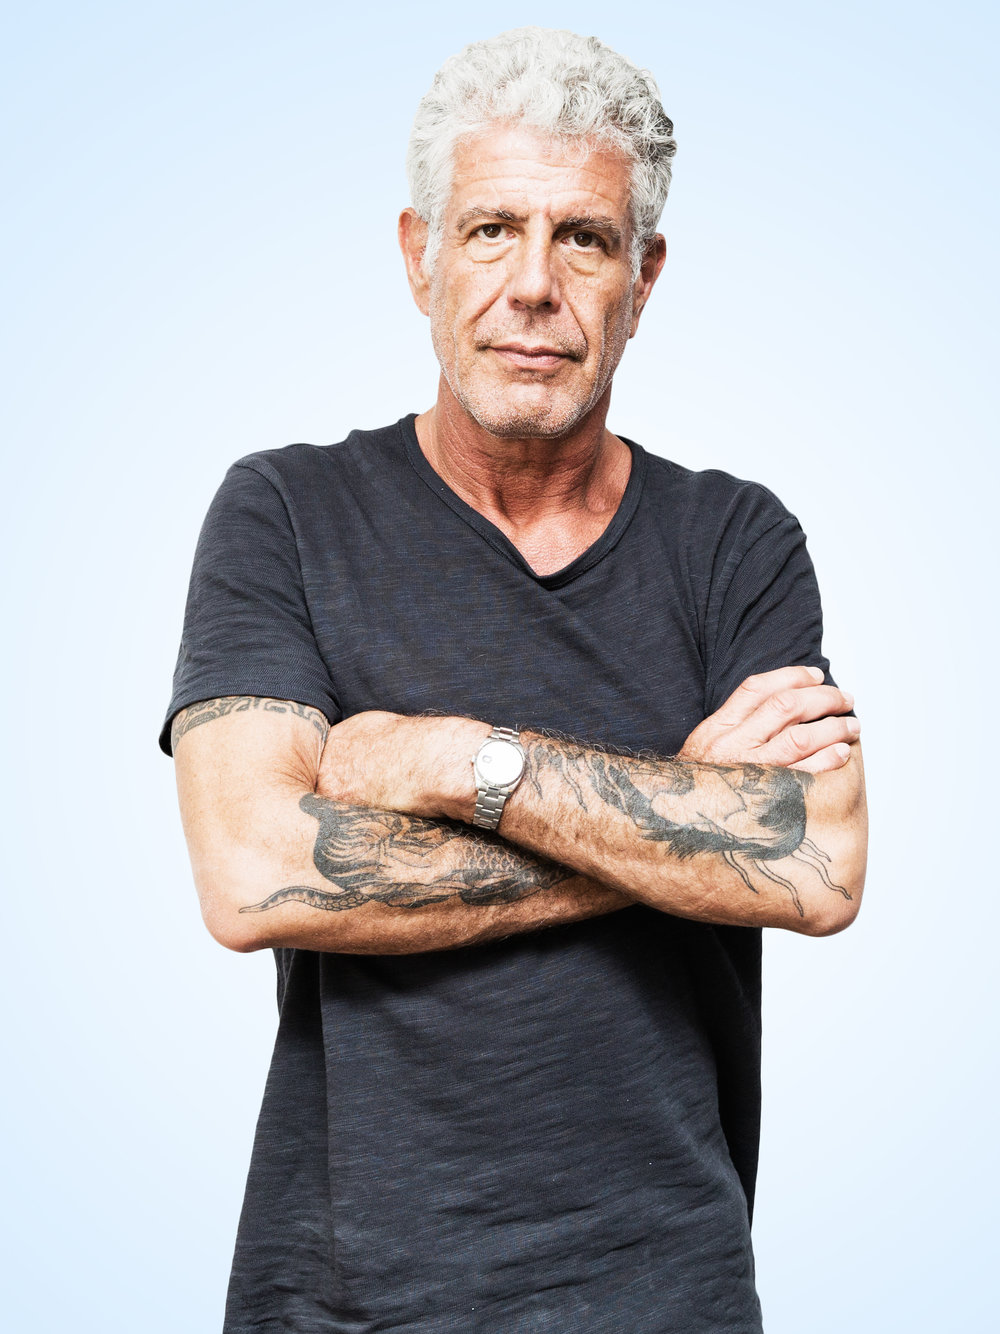 """Anthony Bourdain   Anthony Bourdain on Beer Snobs, Bad Food Trends, and """"Road House"""" for Thrillist.com  New York, NY"""